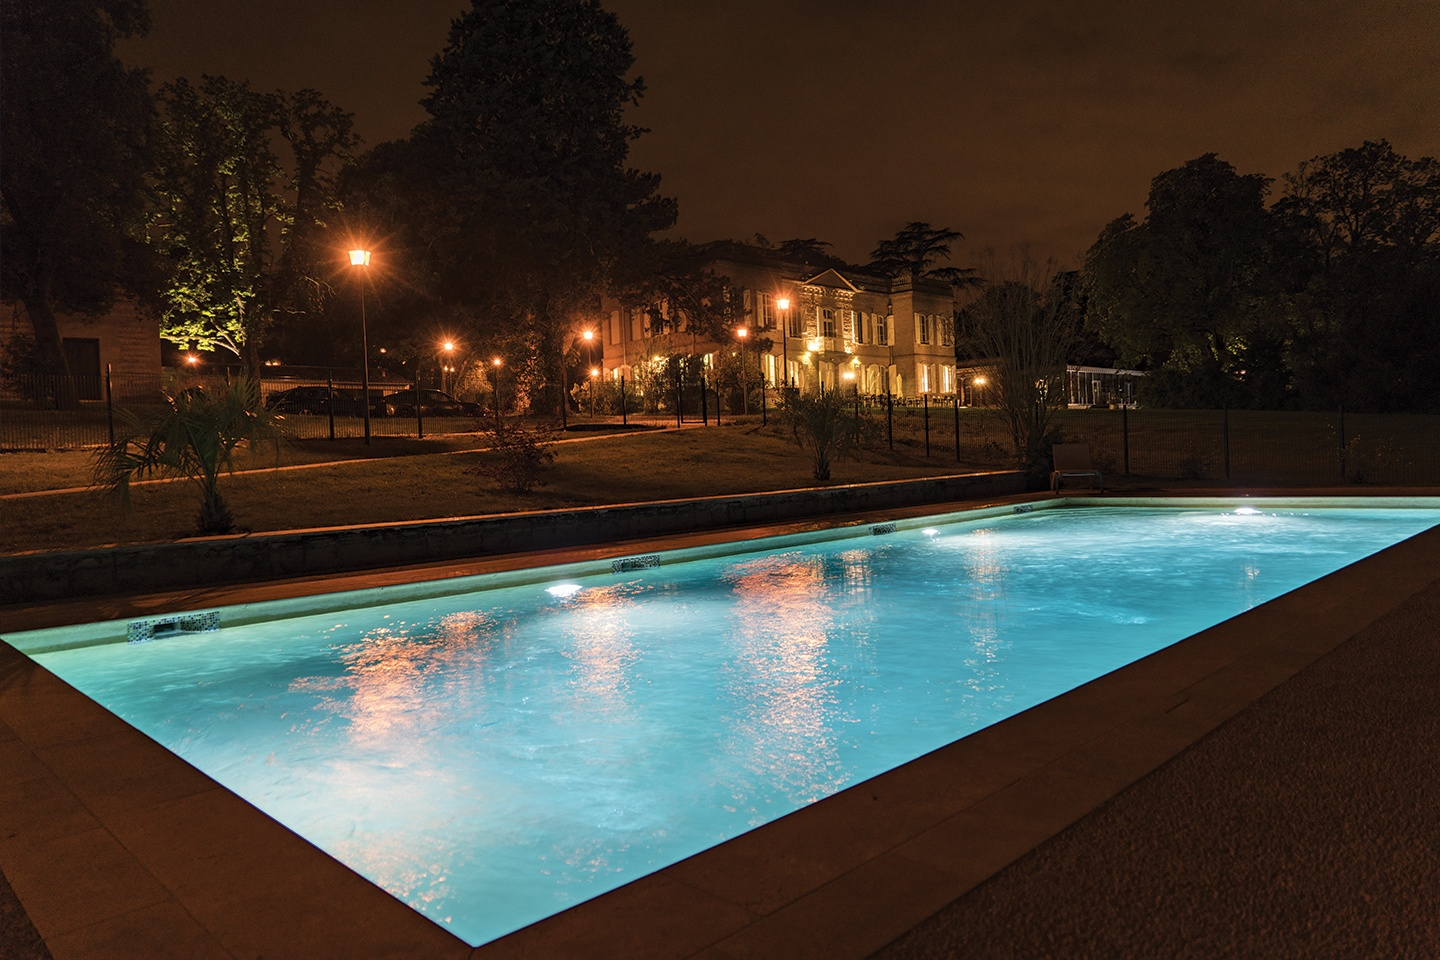 piscine-de-nuit-Diffazur-2019-piscine-rectangle